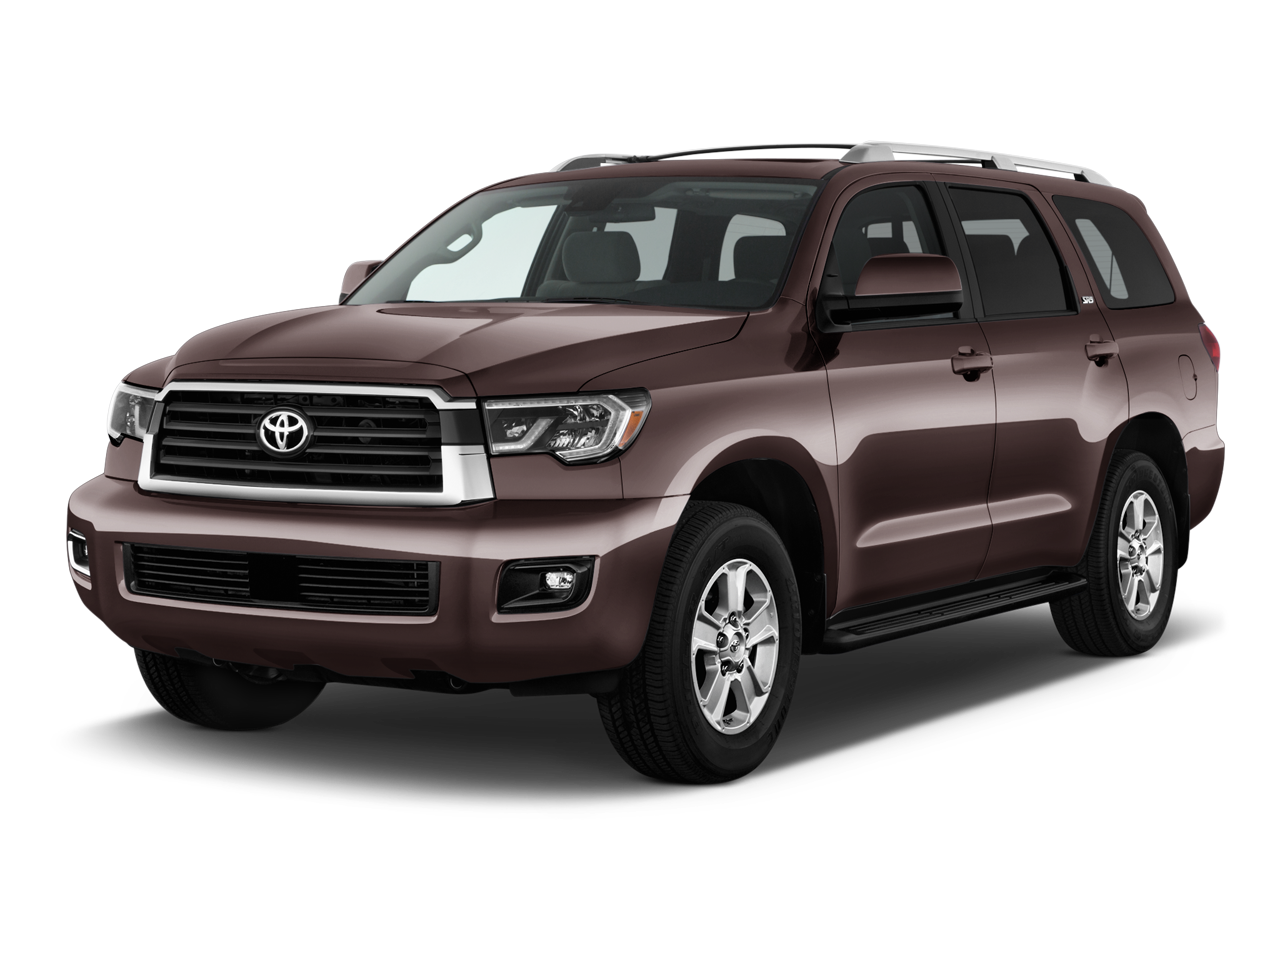 New 2018 Toyota Sequoia SR5 in Lawrence, KS - Crown Toyota of Lawrence